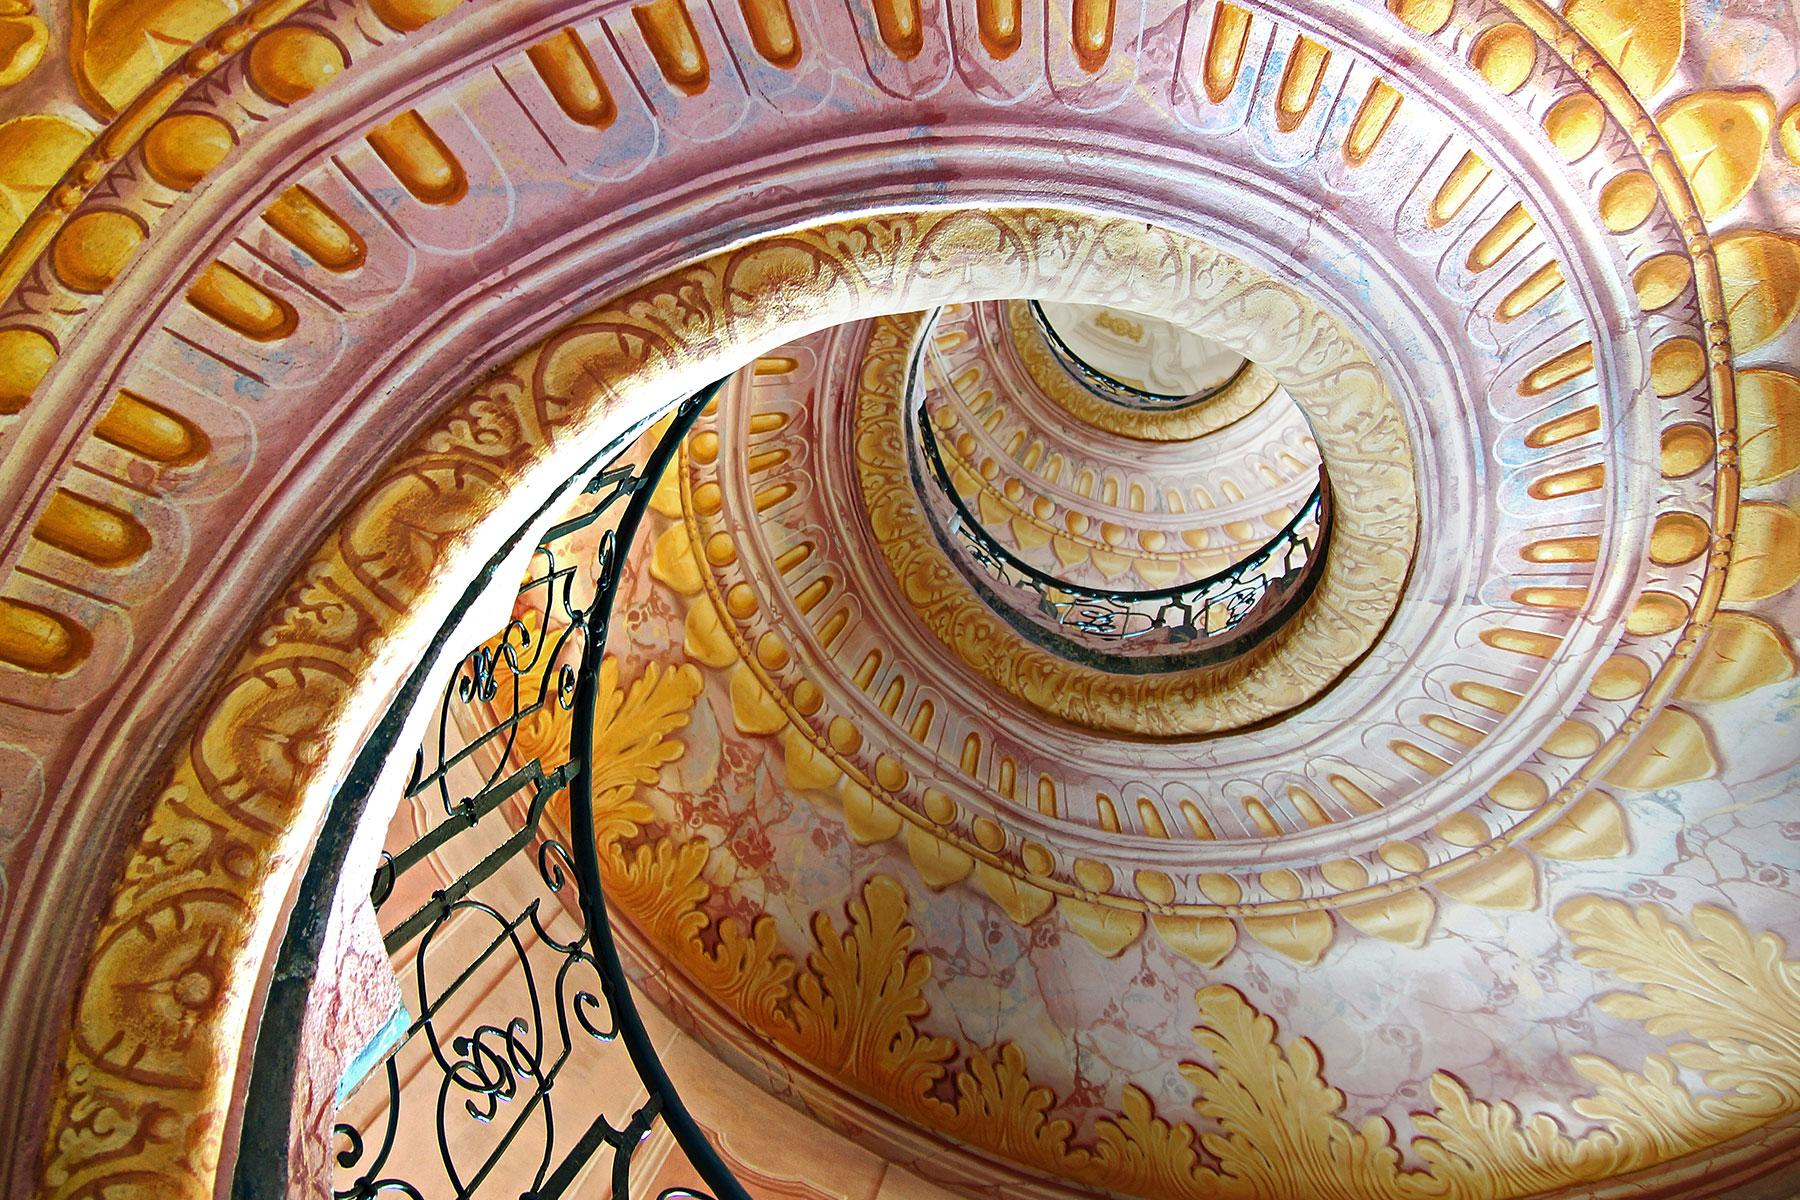 The 20 most incredible staircases in the world fodors travel guide doublecrazyfo Gallery